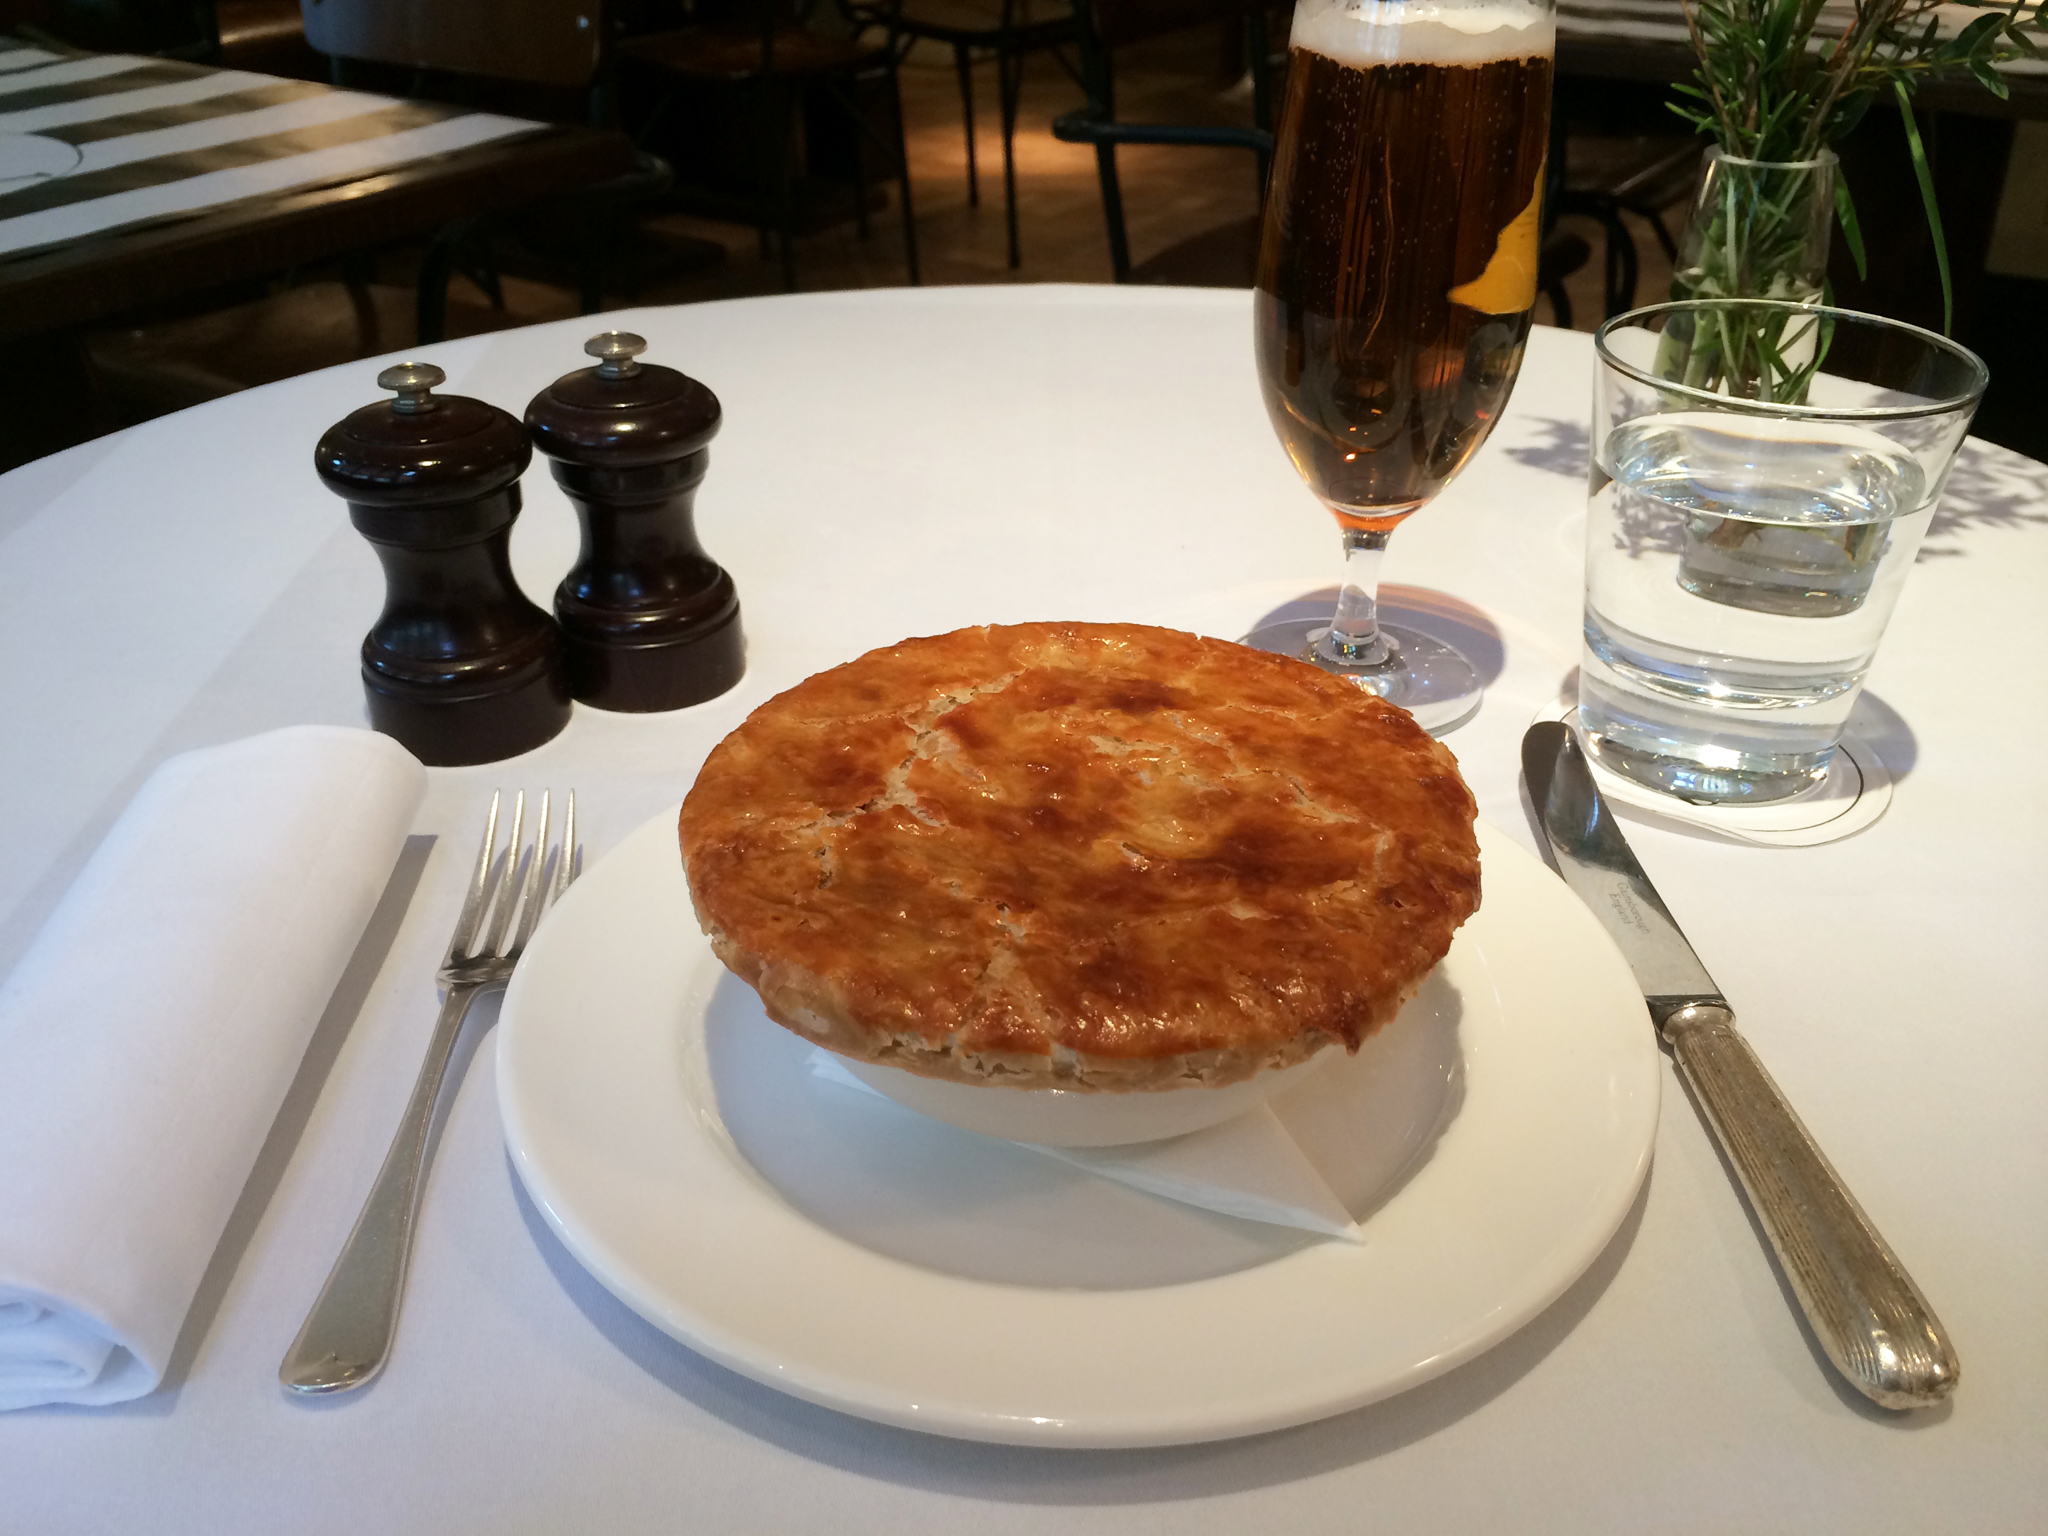 Pie of the day at Quo Vadis